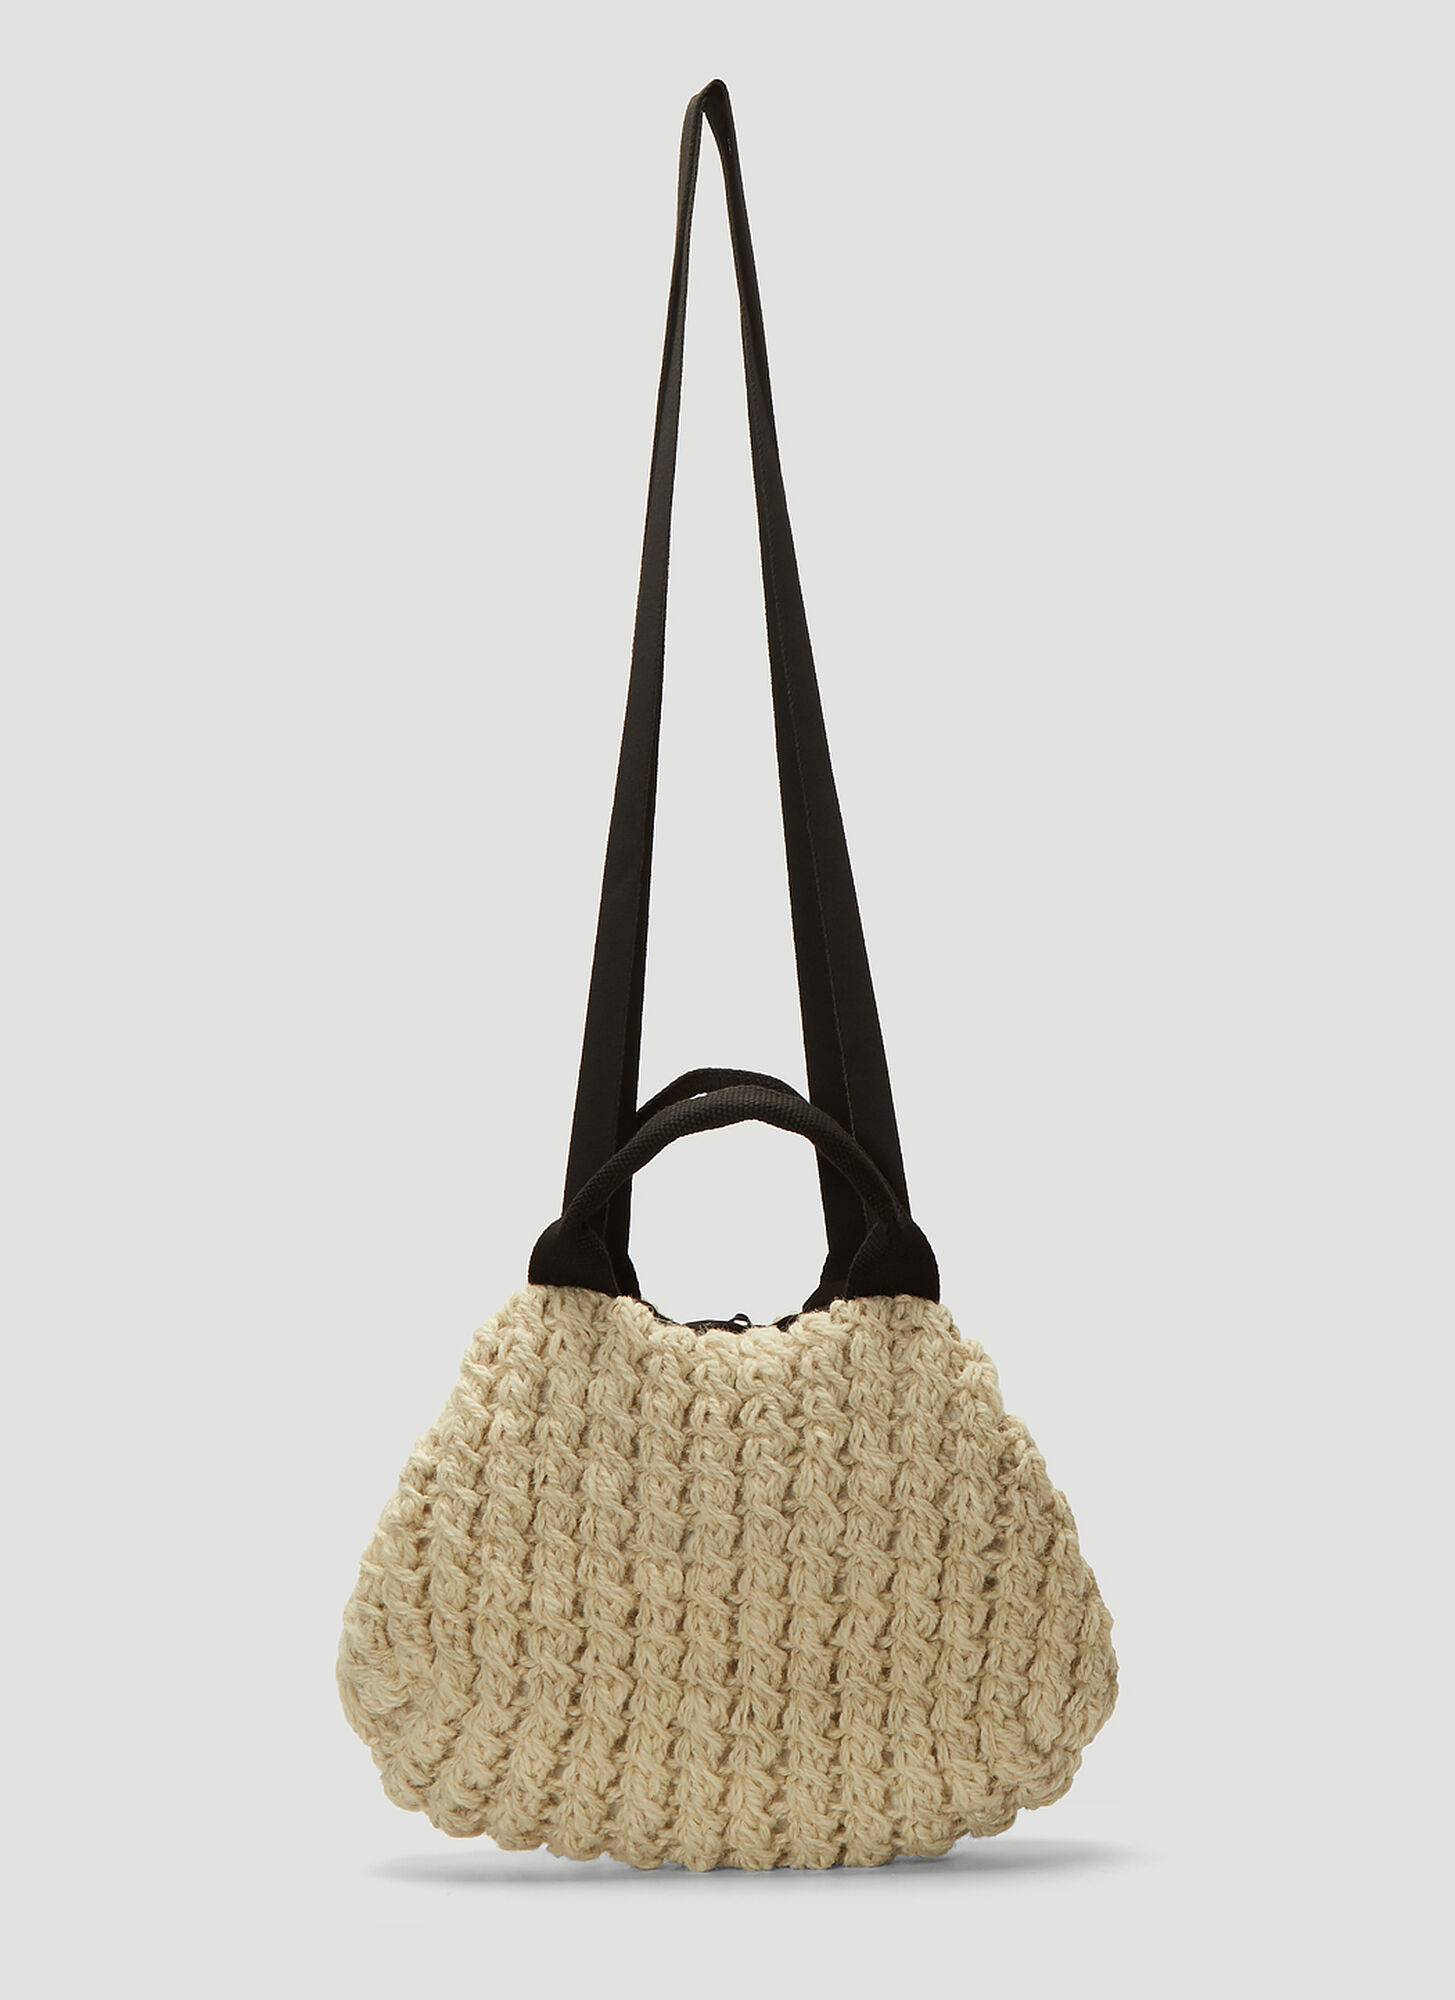 Muun Mini Ivar Knit Weave Bag in Beige